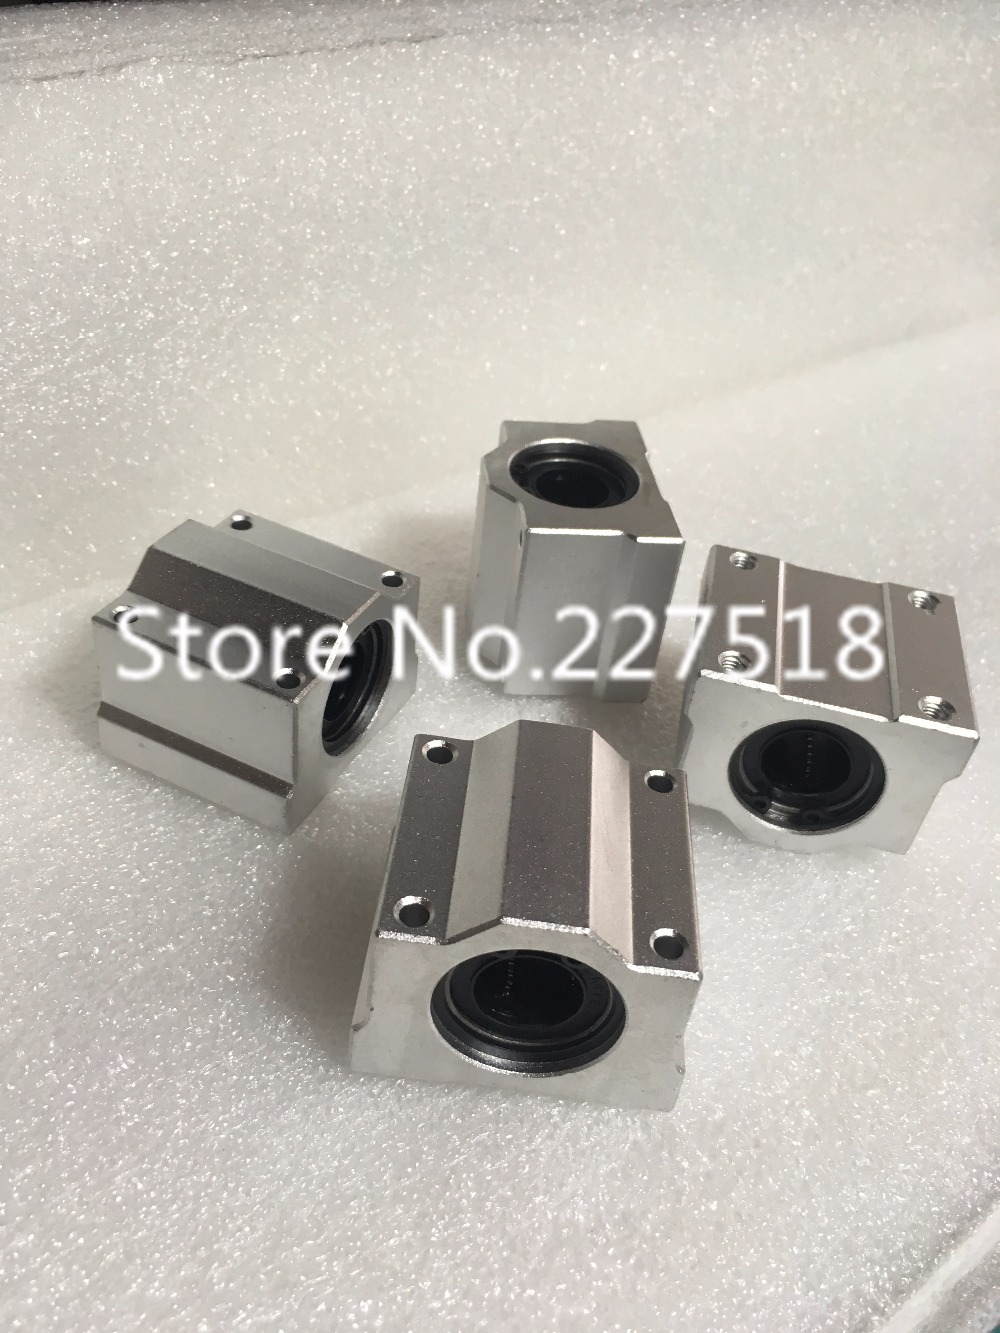 2pcs SCS25UU 25mm linear guide Linear axis ball bearing block with LM25UU bush, pillow block linear unit for CNC part 1pc scs50uu 50mm linear guide linear axis ball bearing block with lm50uu bush pillow block linear unit for cnc part